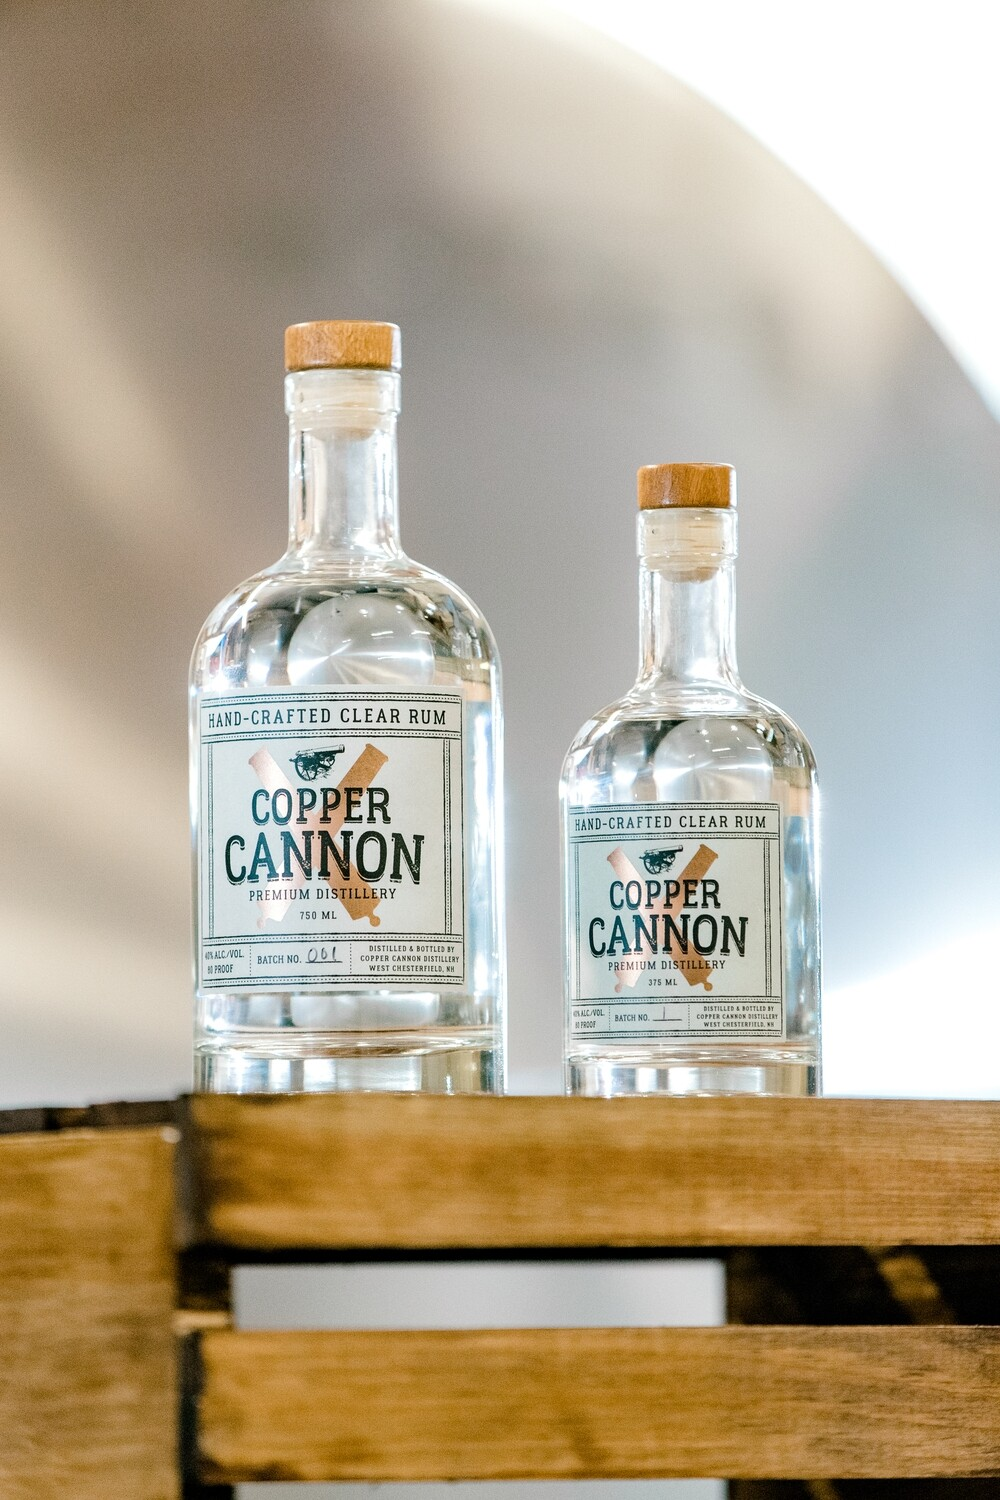 Copper Cannon Hand Crafted Clear Rum